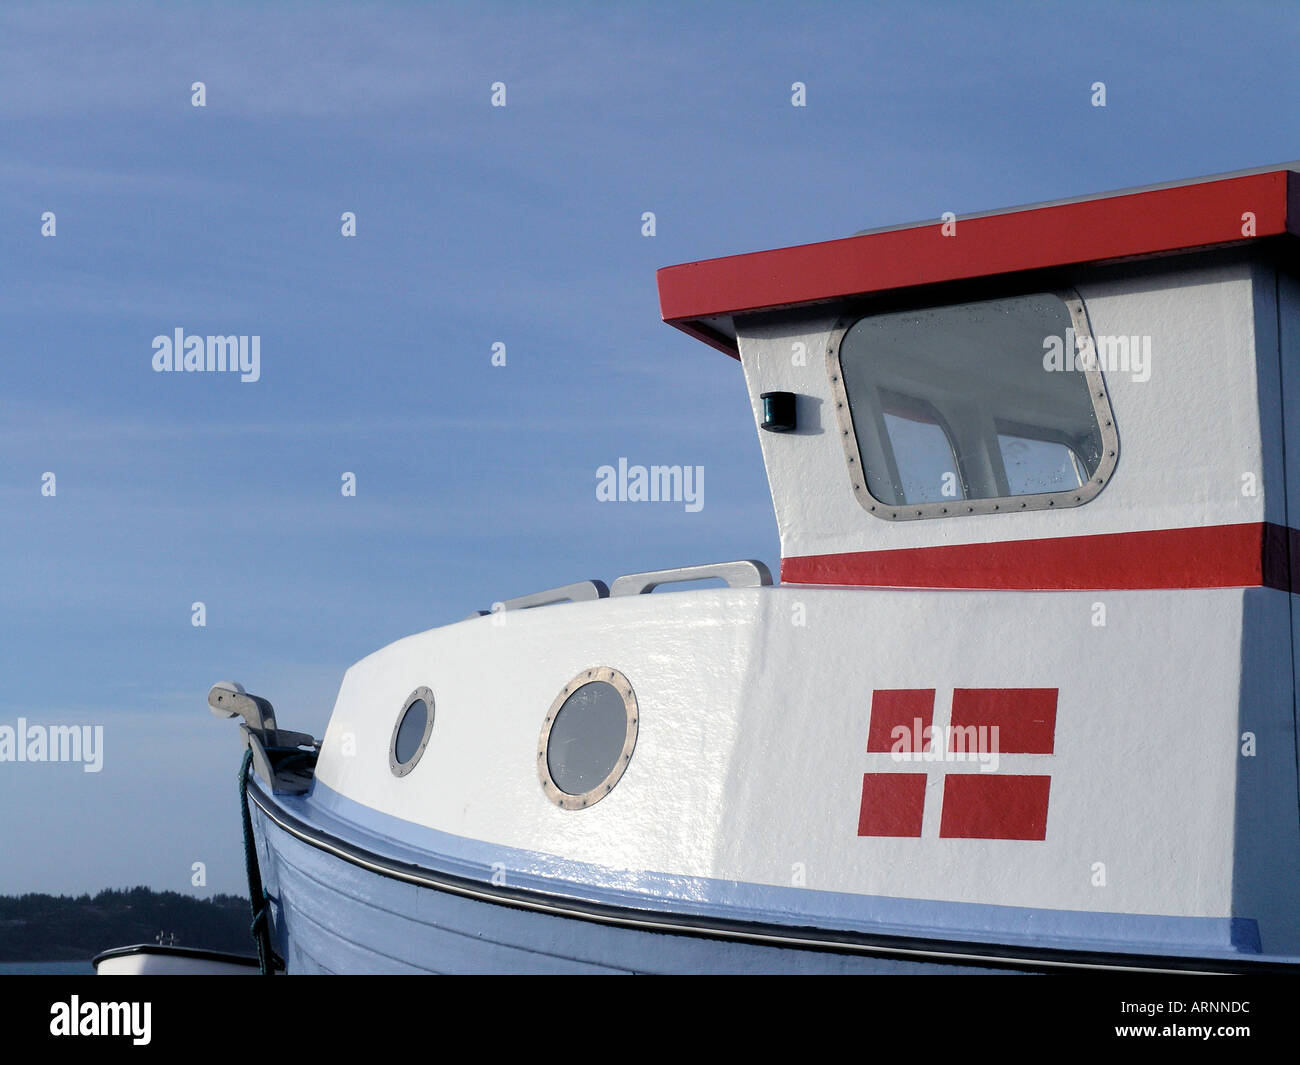 Pilot house on boat with danish falg Stock Photo